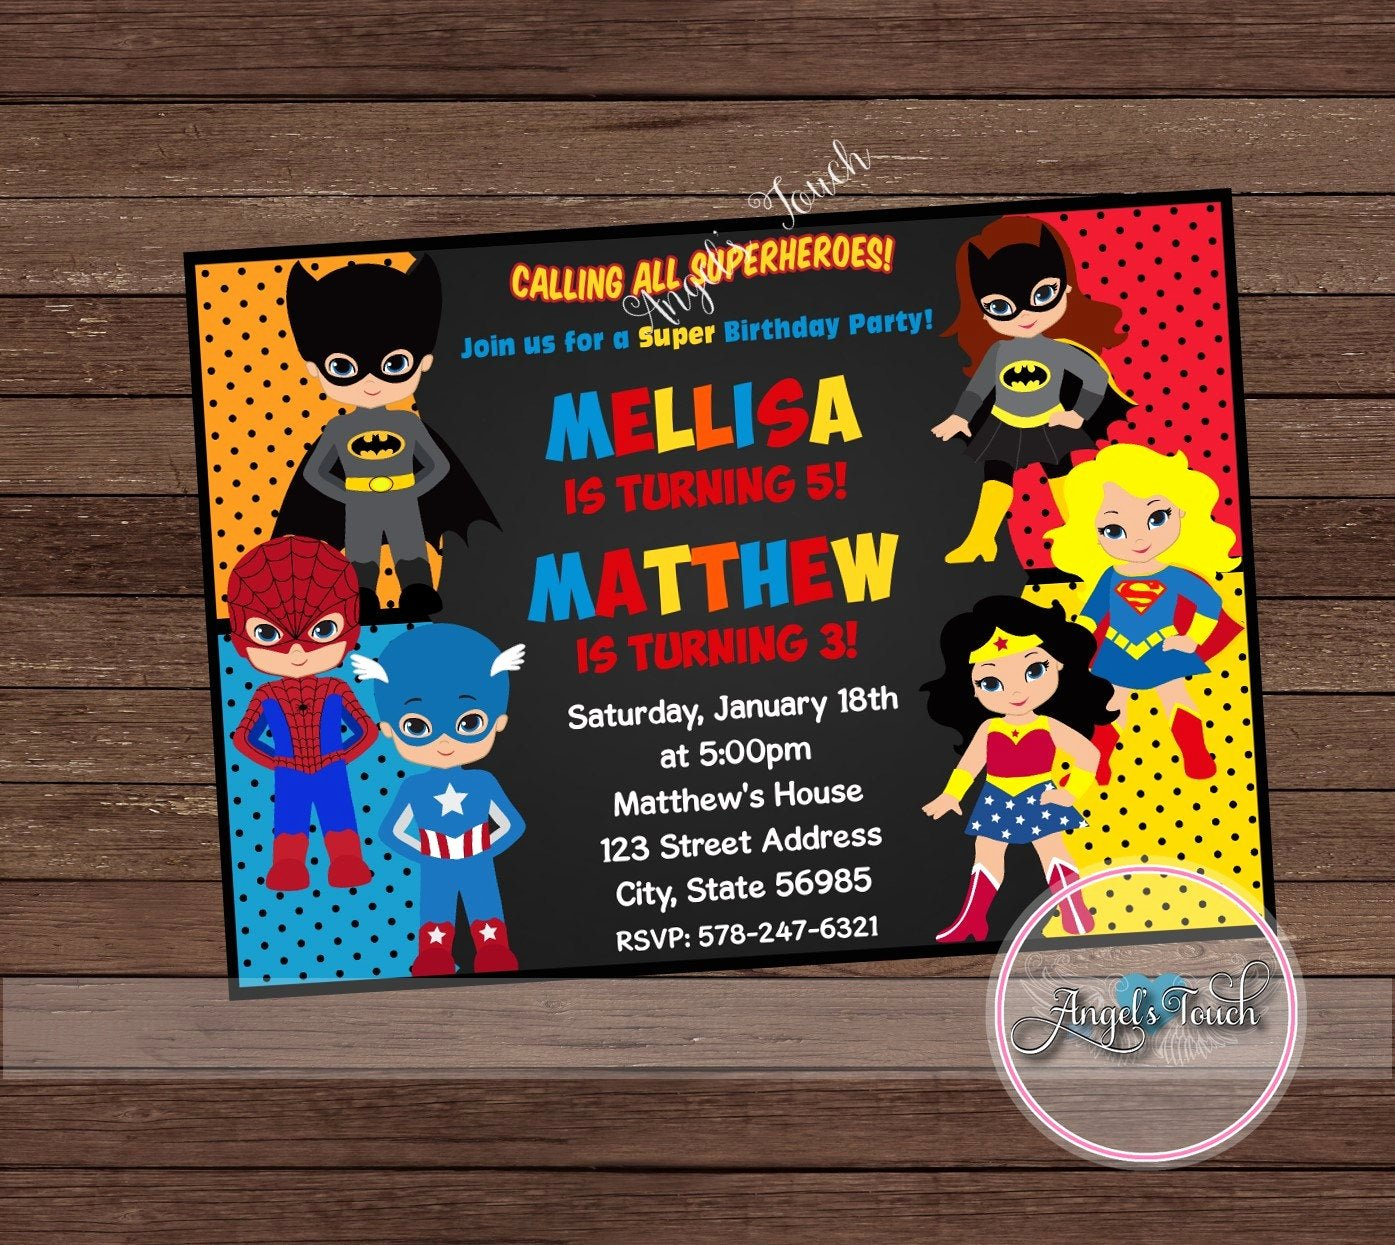 Superhero Birthday Party Invitations Beautiful Super Hero Party Invitation Superheroes Birthday Invitation